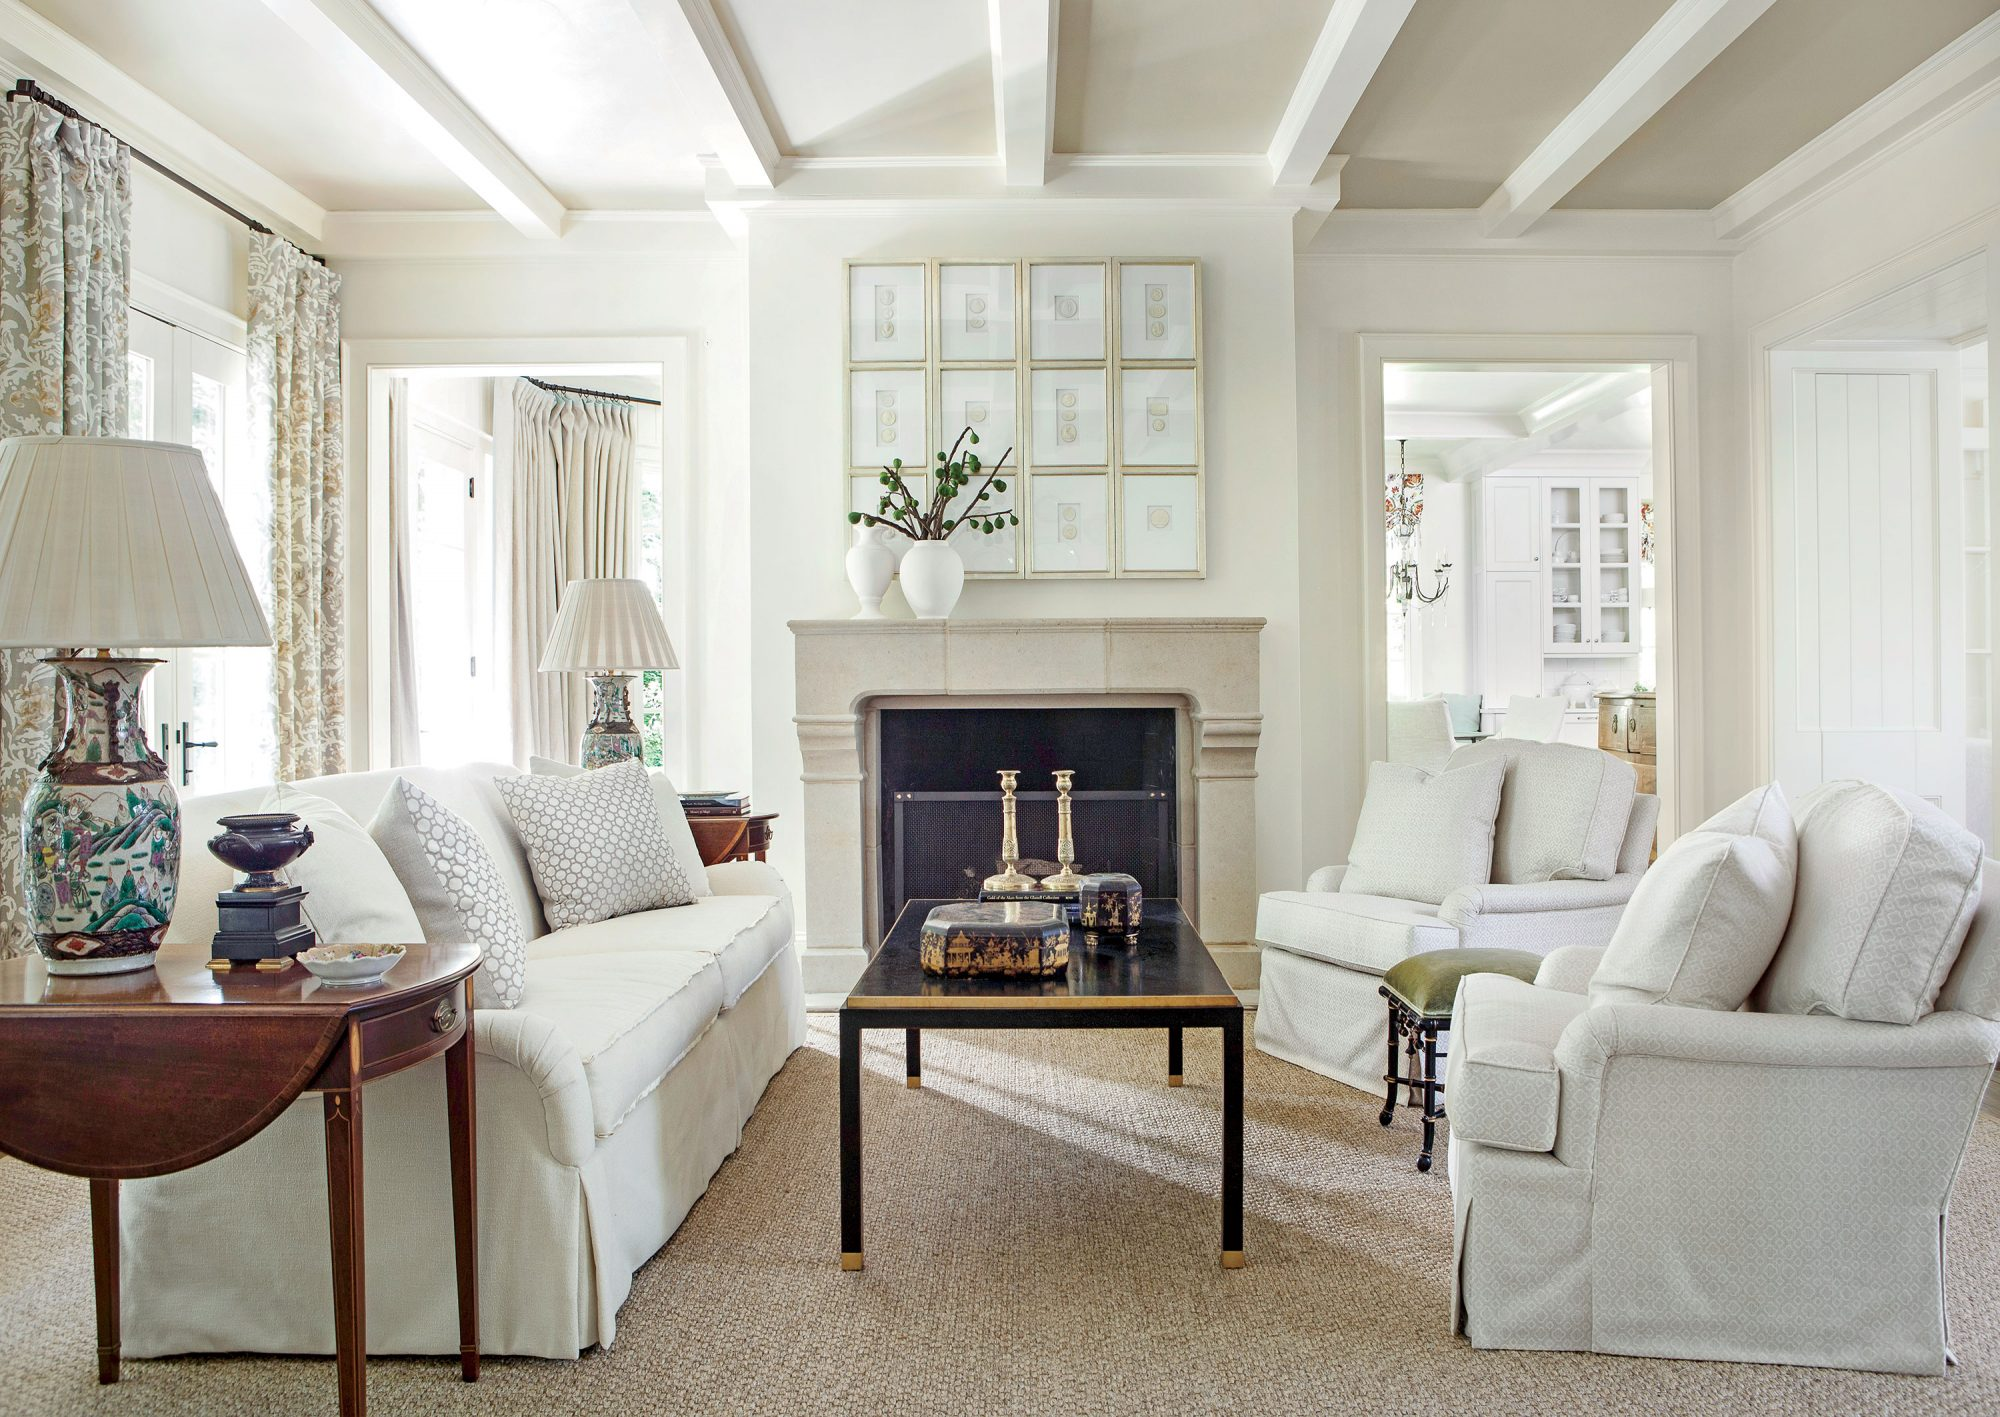 House Paint Ideas - Beautiful Color Palettes - Southern Living